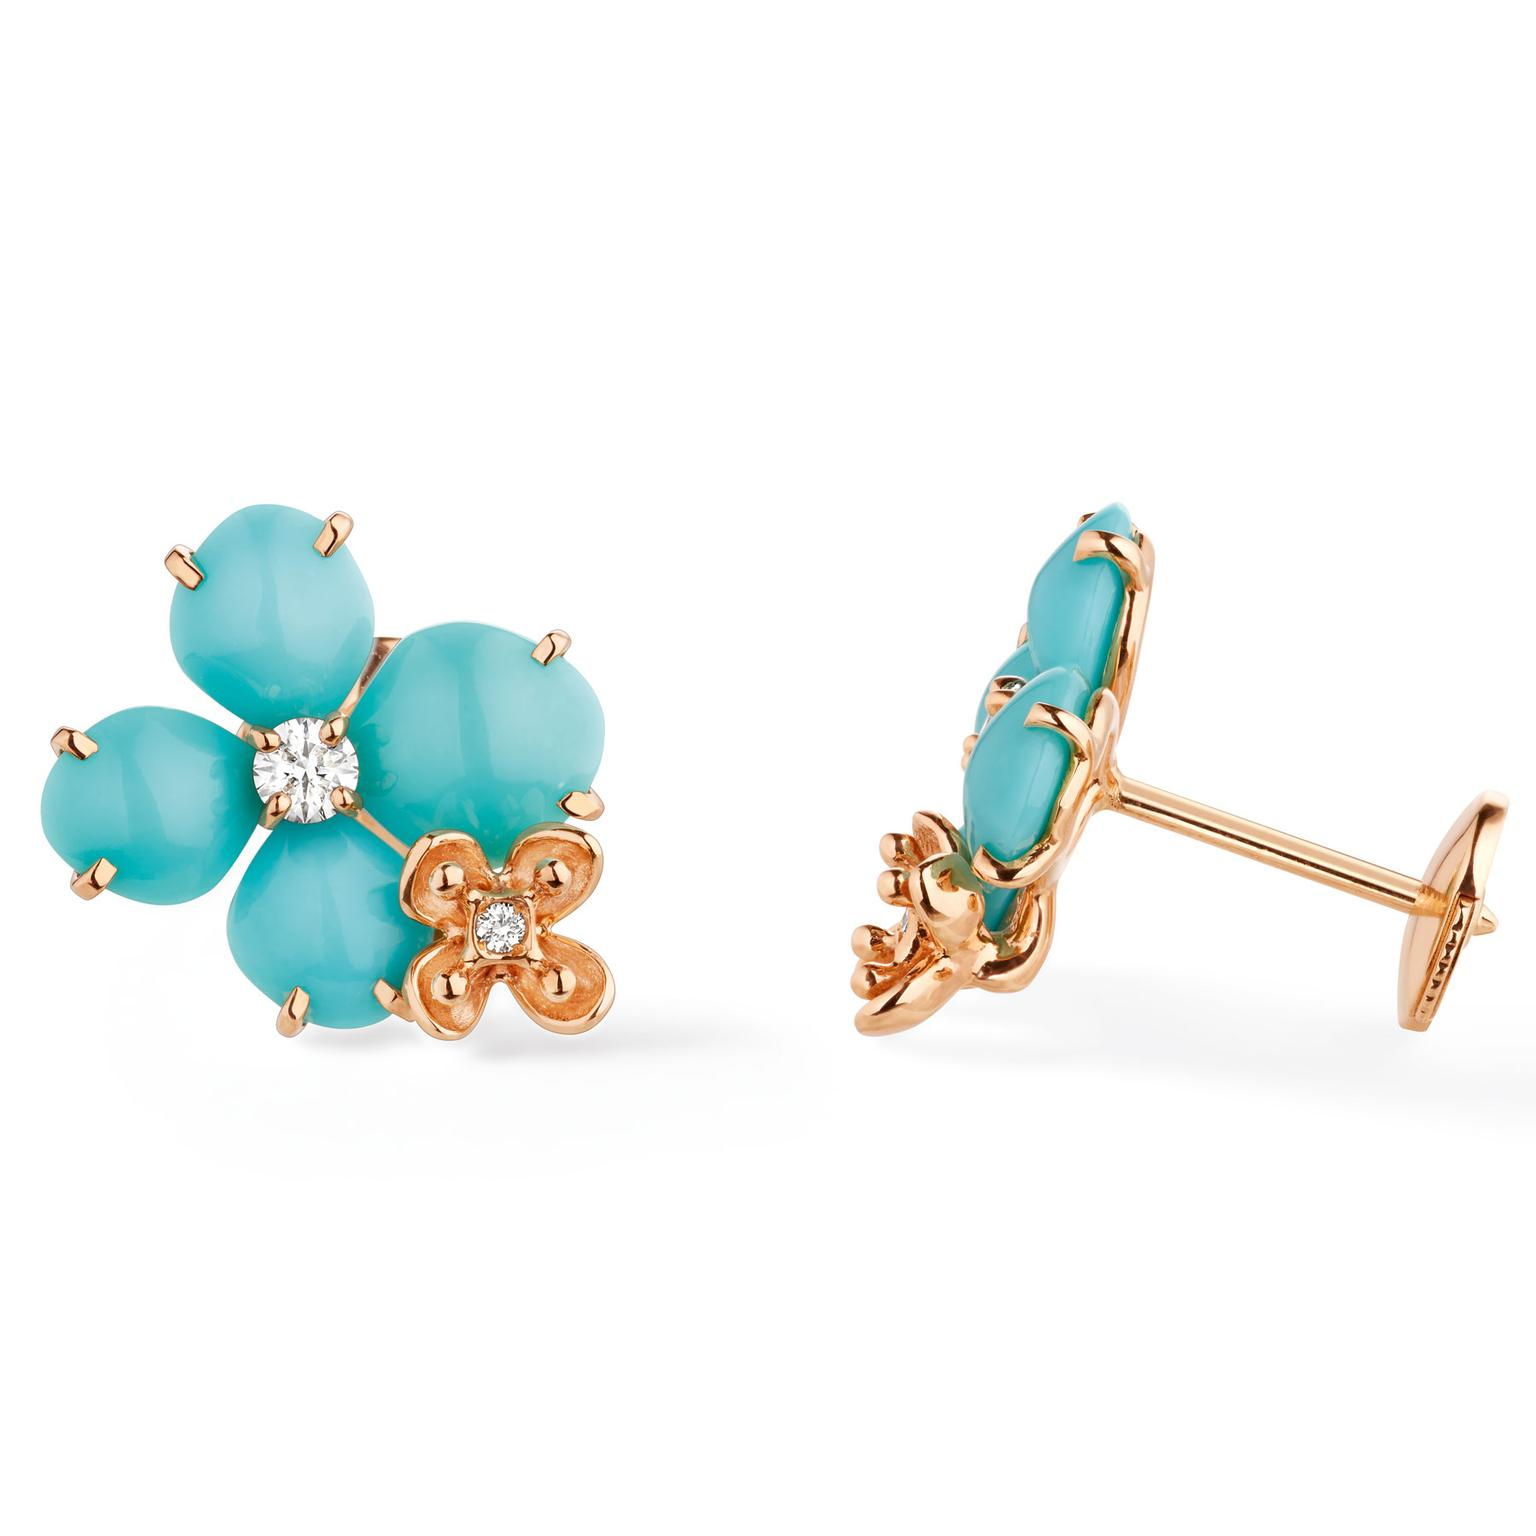 Chaumet turquoise Hortensia earrings